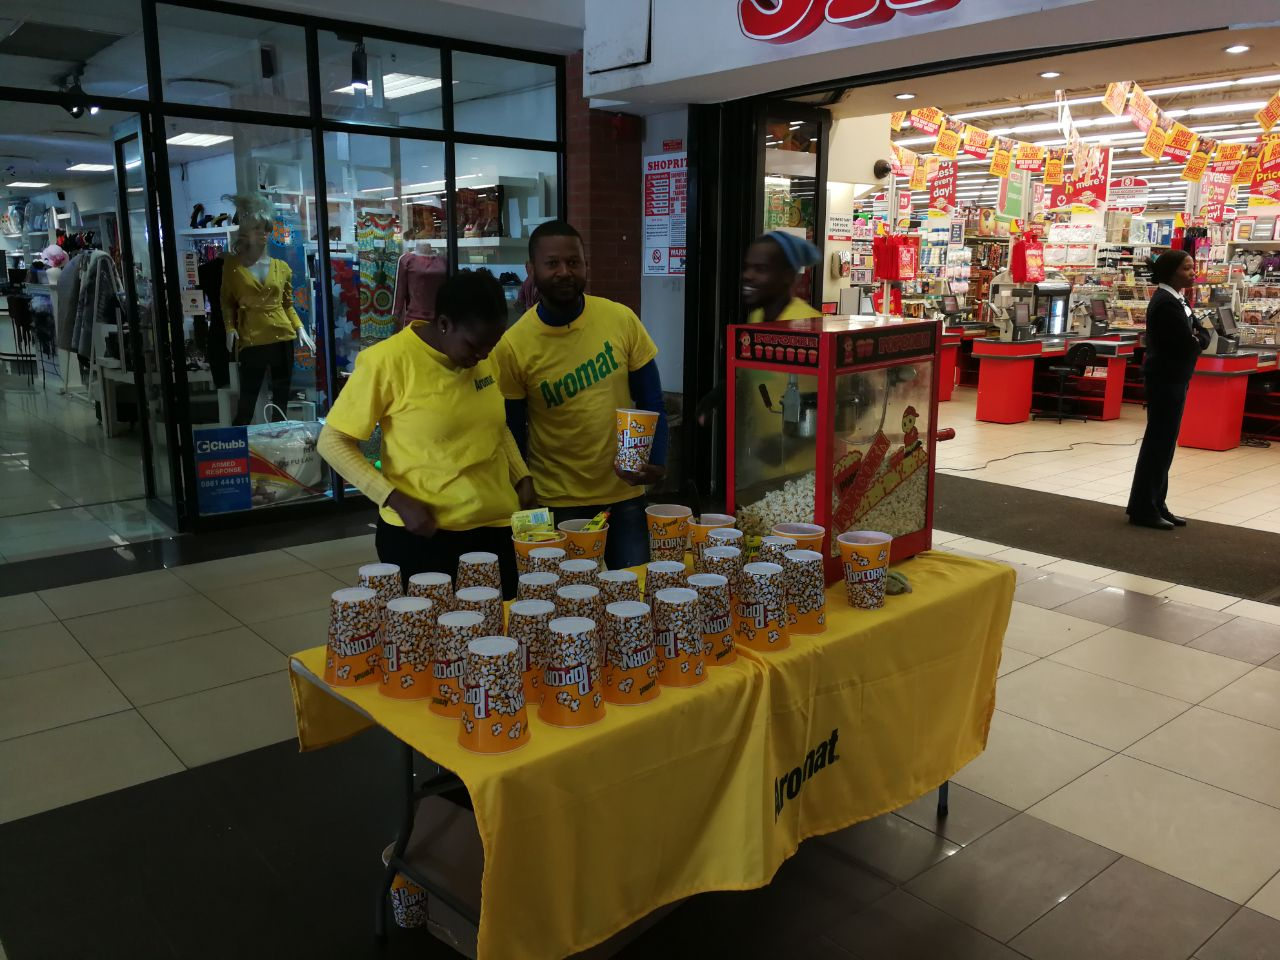 Mall Ads implements campaign for Aromat